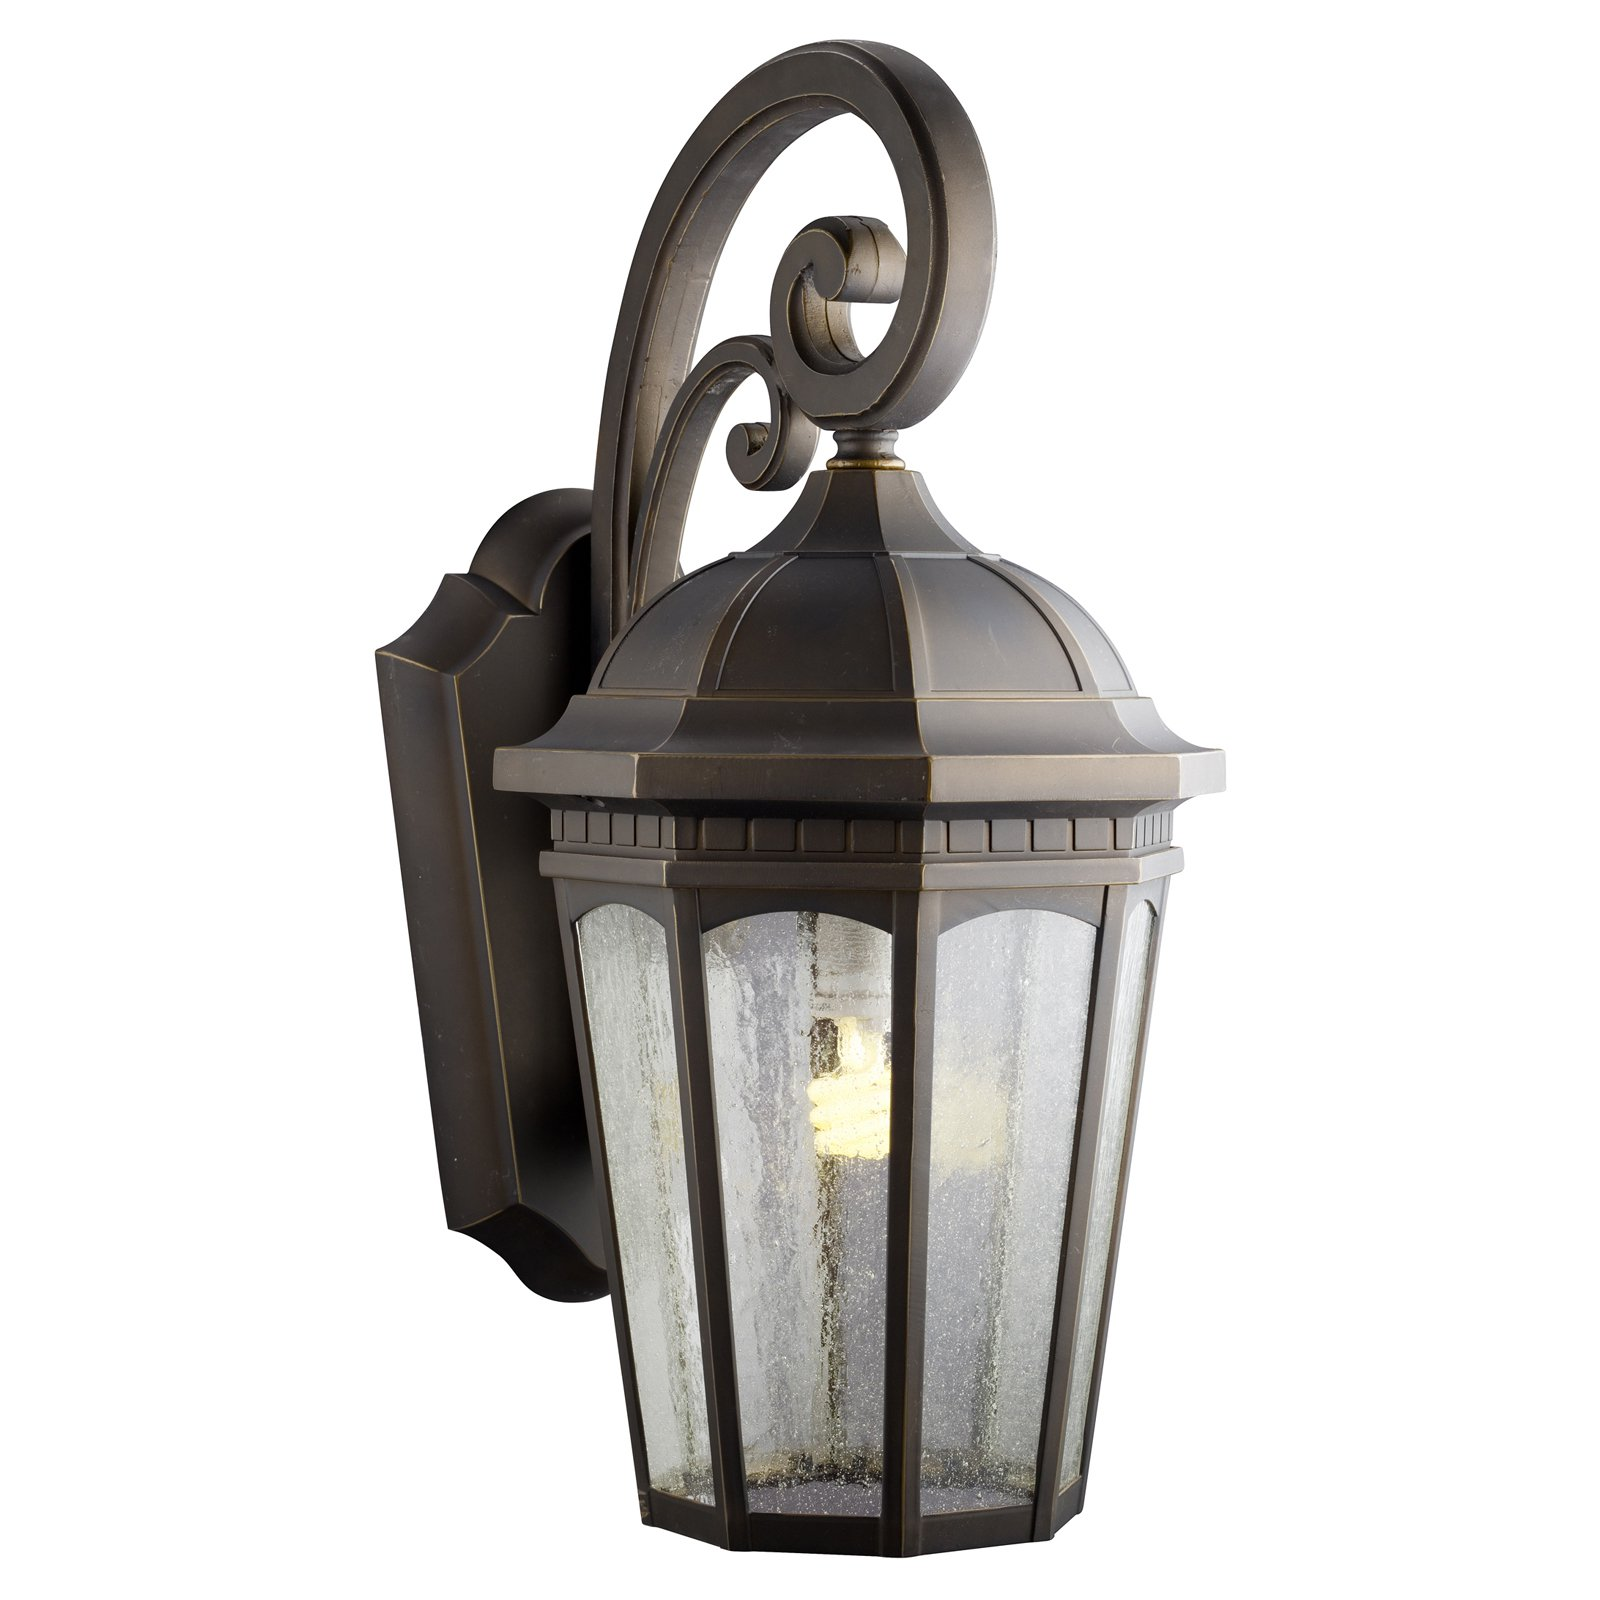 Kichler Courtyard 1101 Outdoor Wall Lantern - Rubbed Bronze